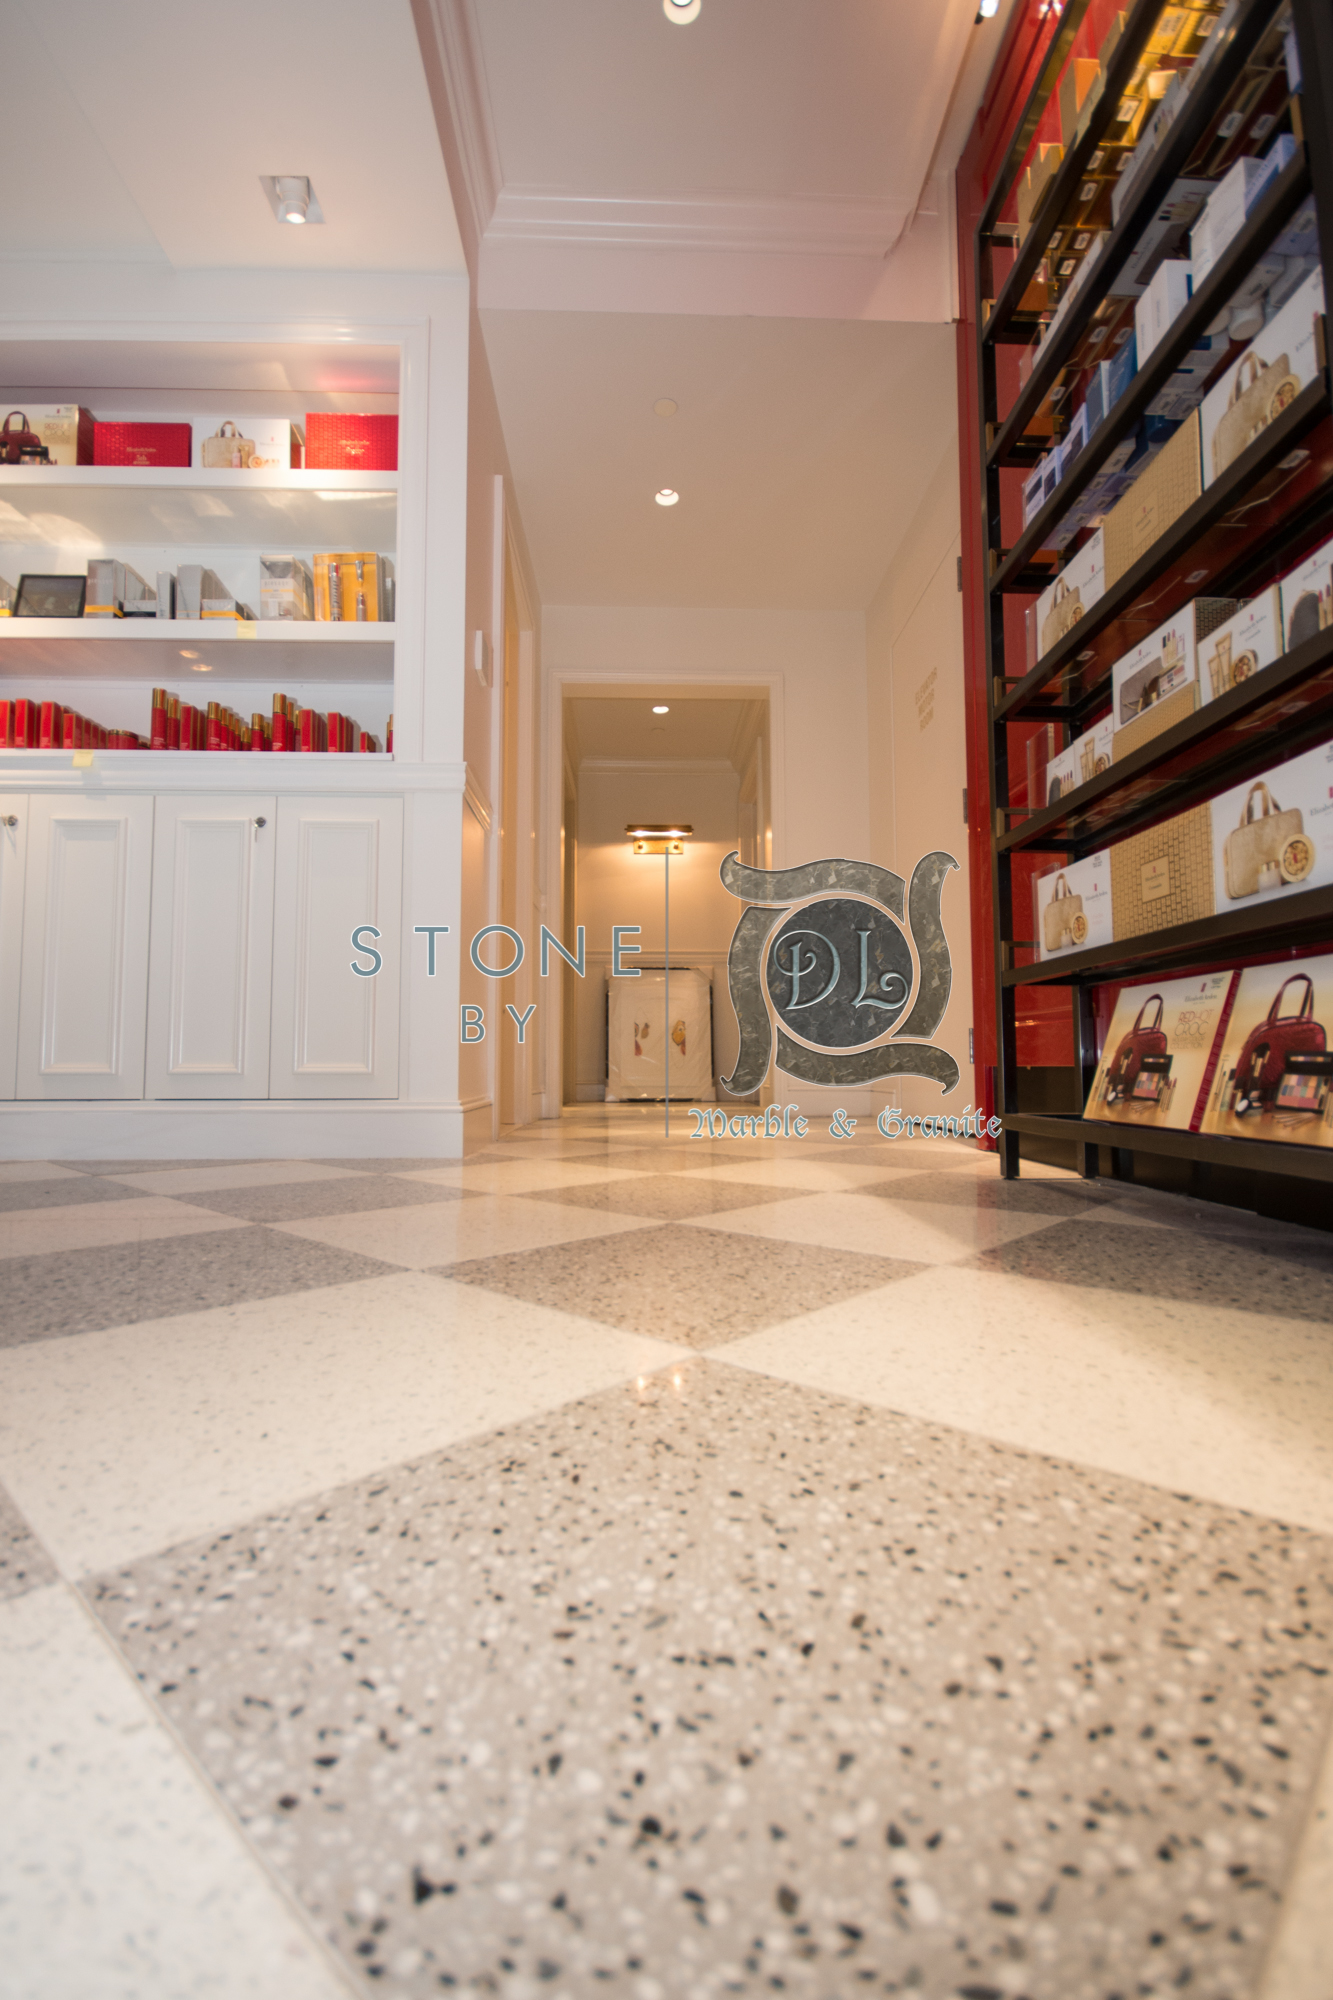 DSC_8328 - Stone by DL Marble and Granite Inc. Elizabeth Arden - Red Door Spa - 200 Park Avenue South - New York.jpg